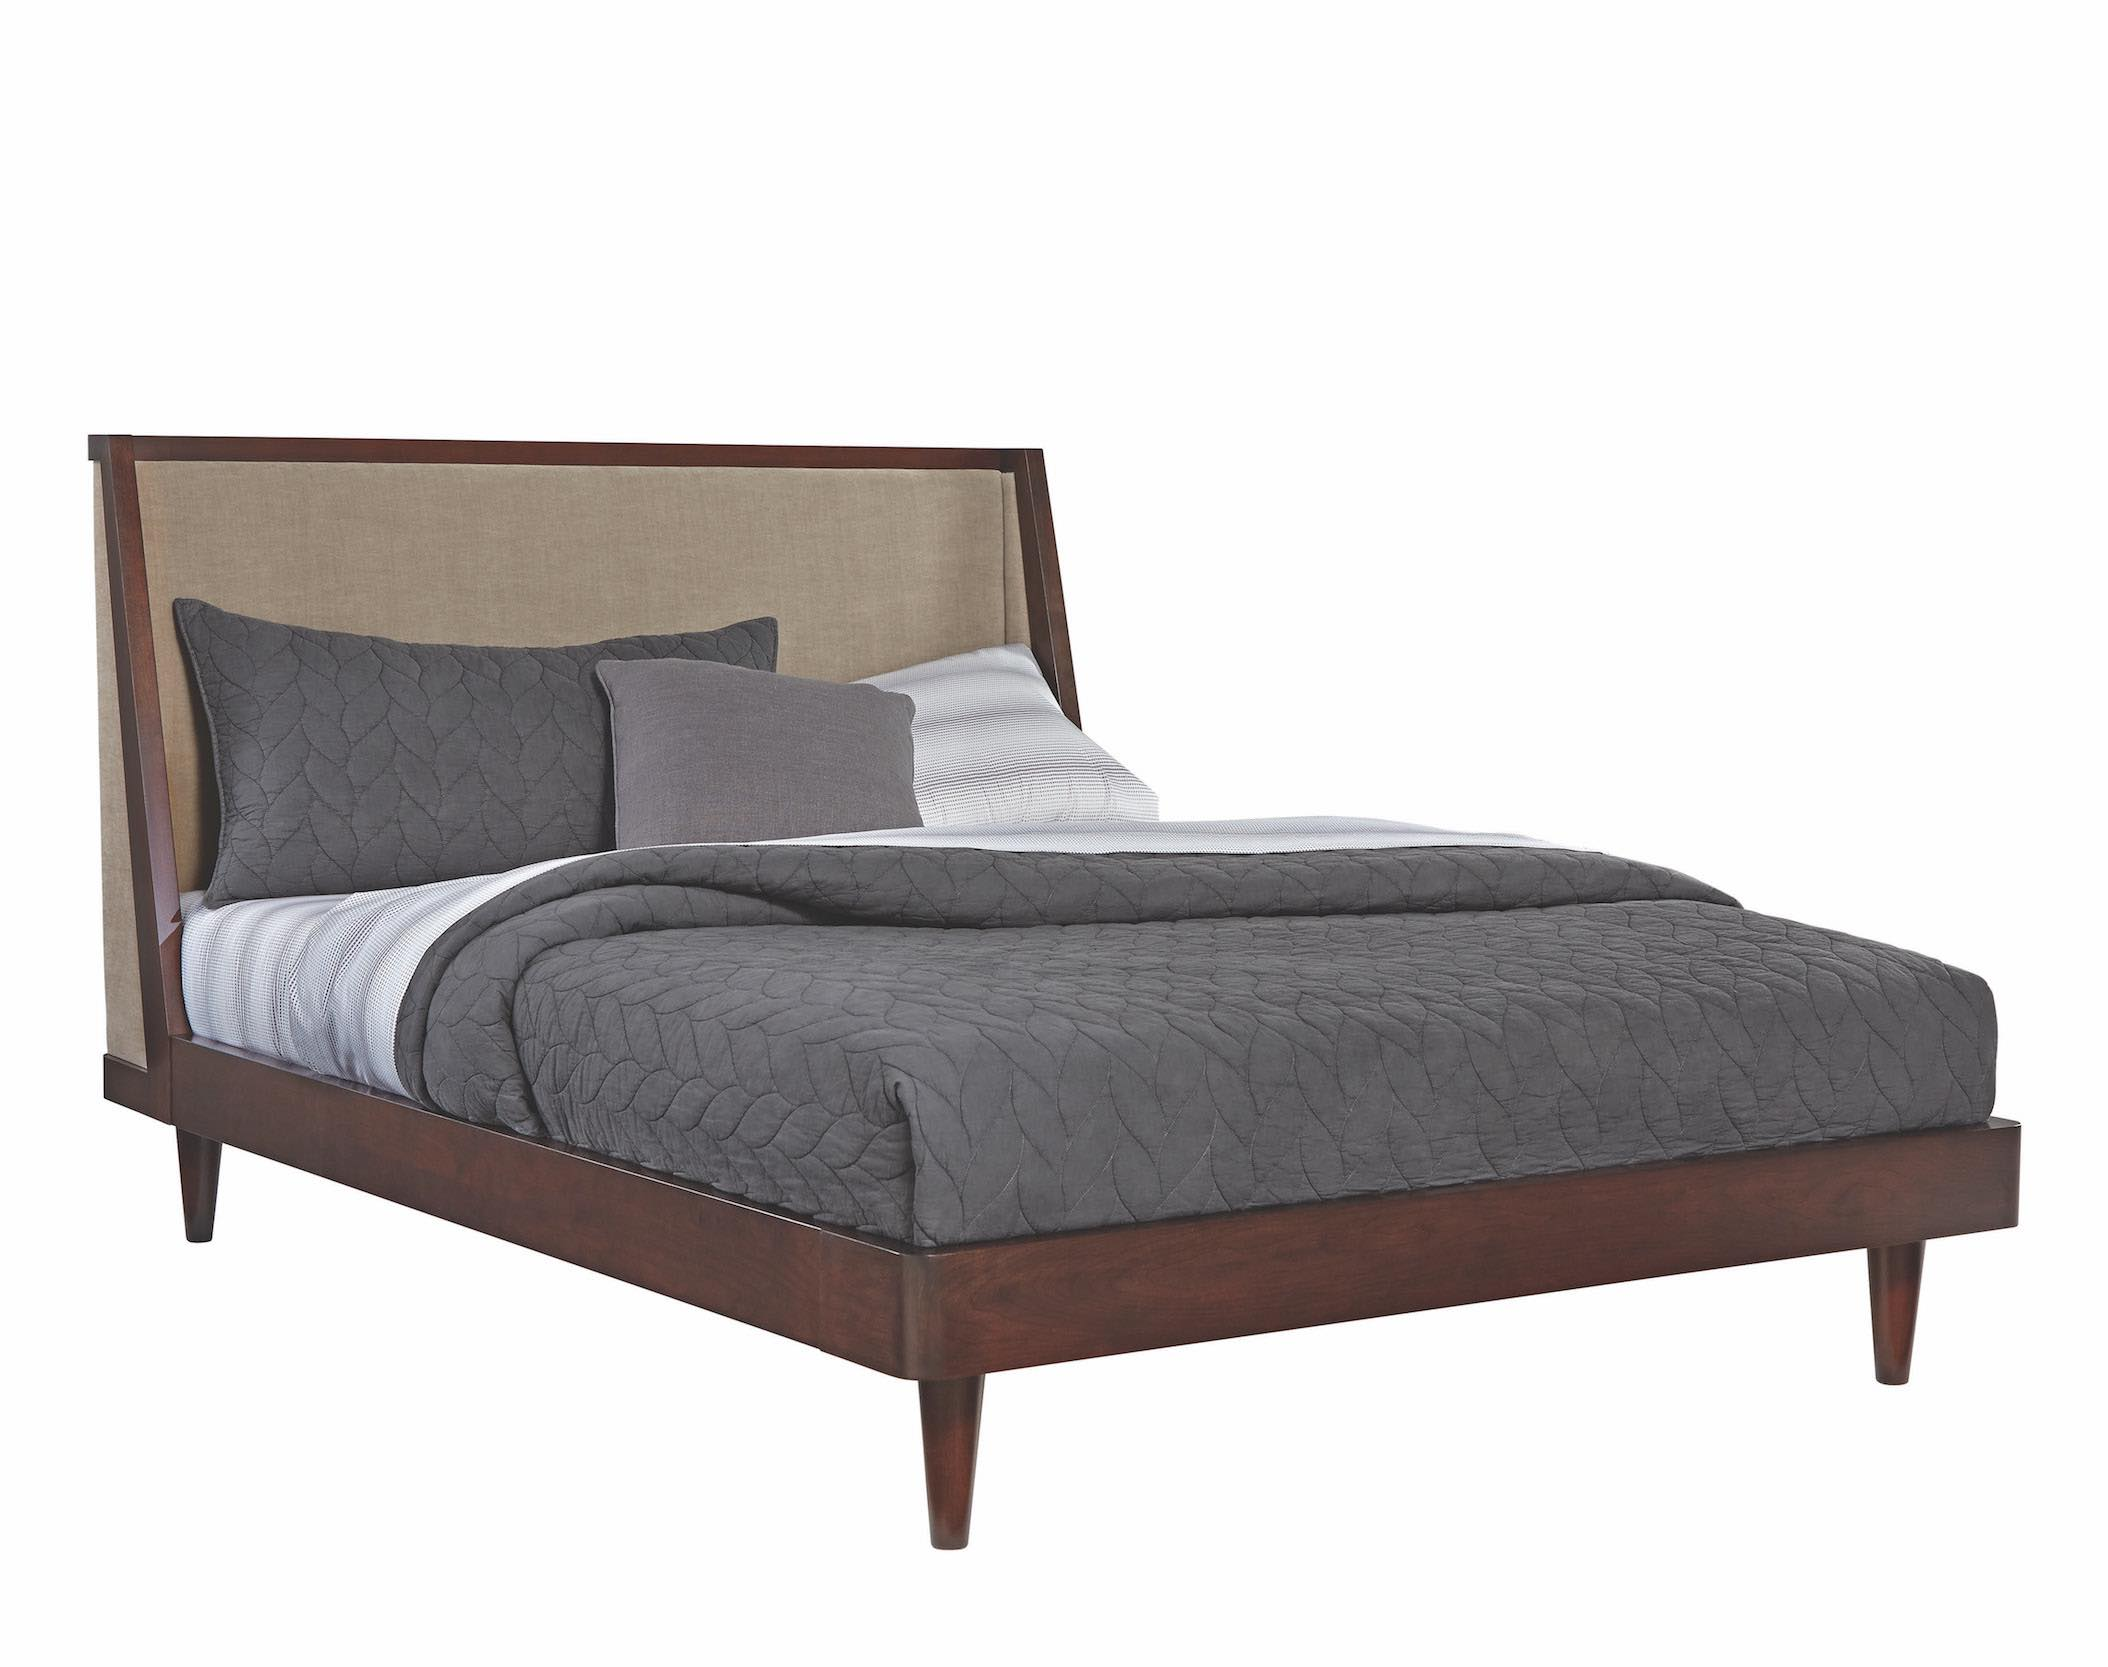 Jasper-Bed-D-Product-Shot-1.jpg